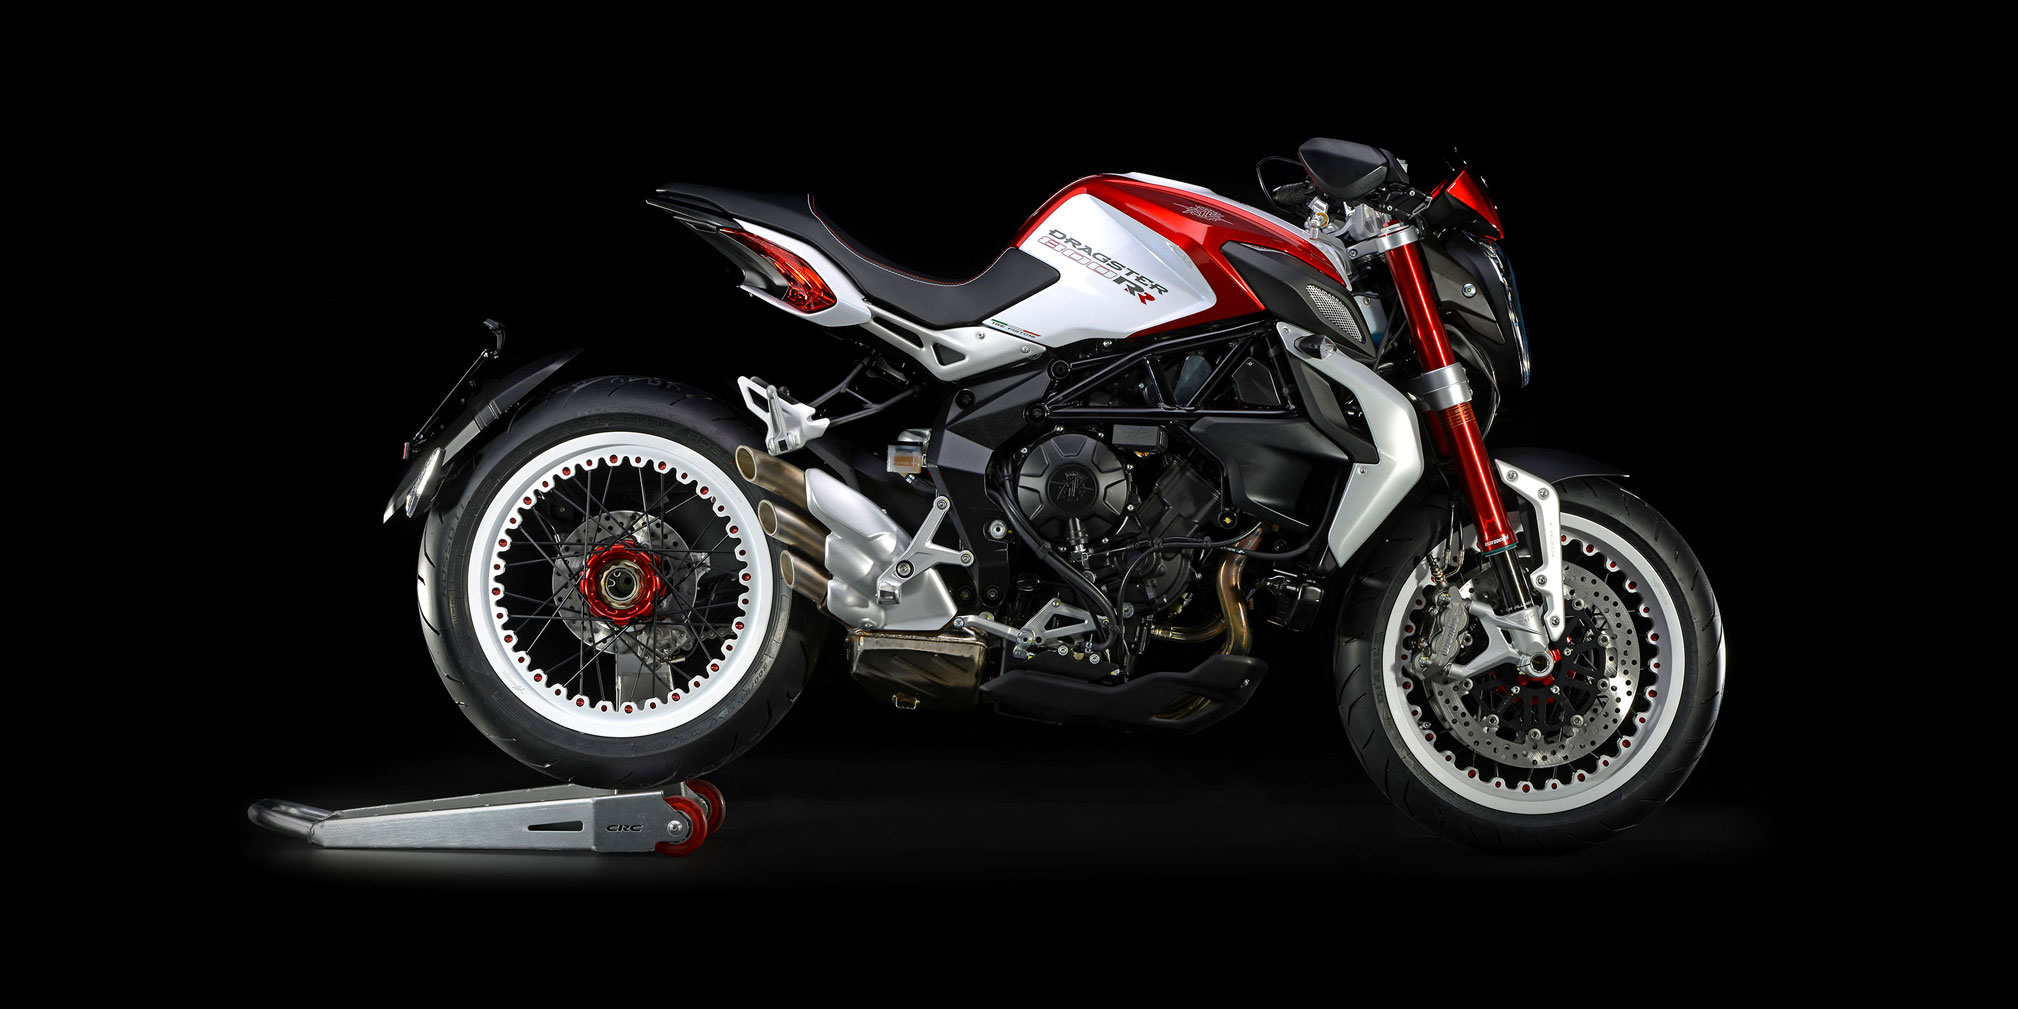 2018 MV Agusta Dragster 800 RR Review - TotalMotorcycle